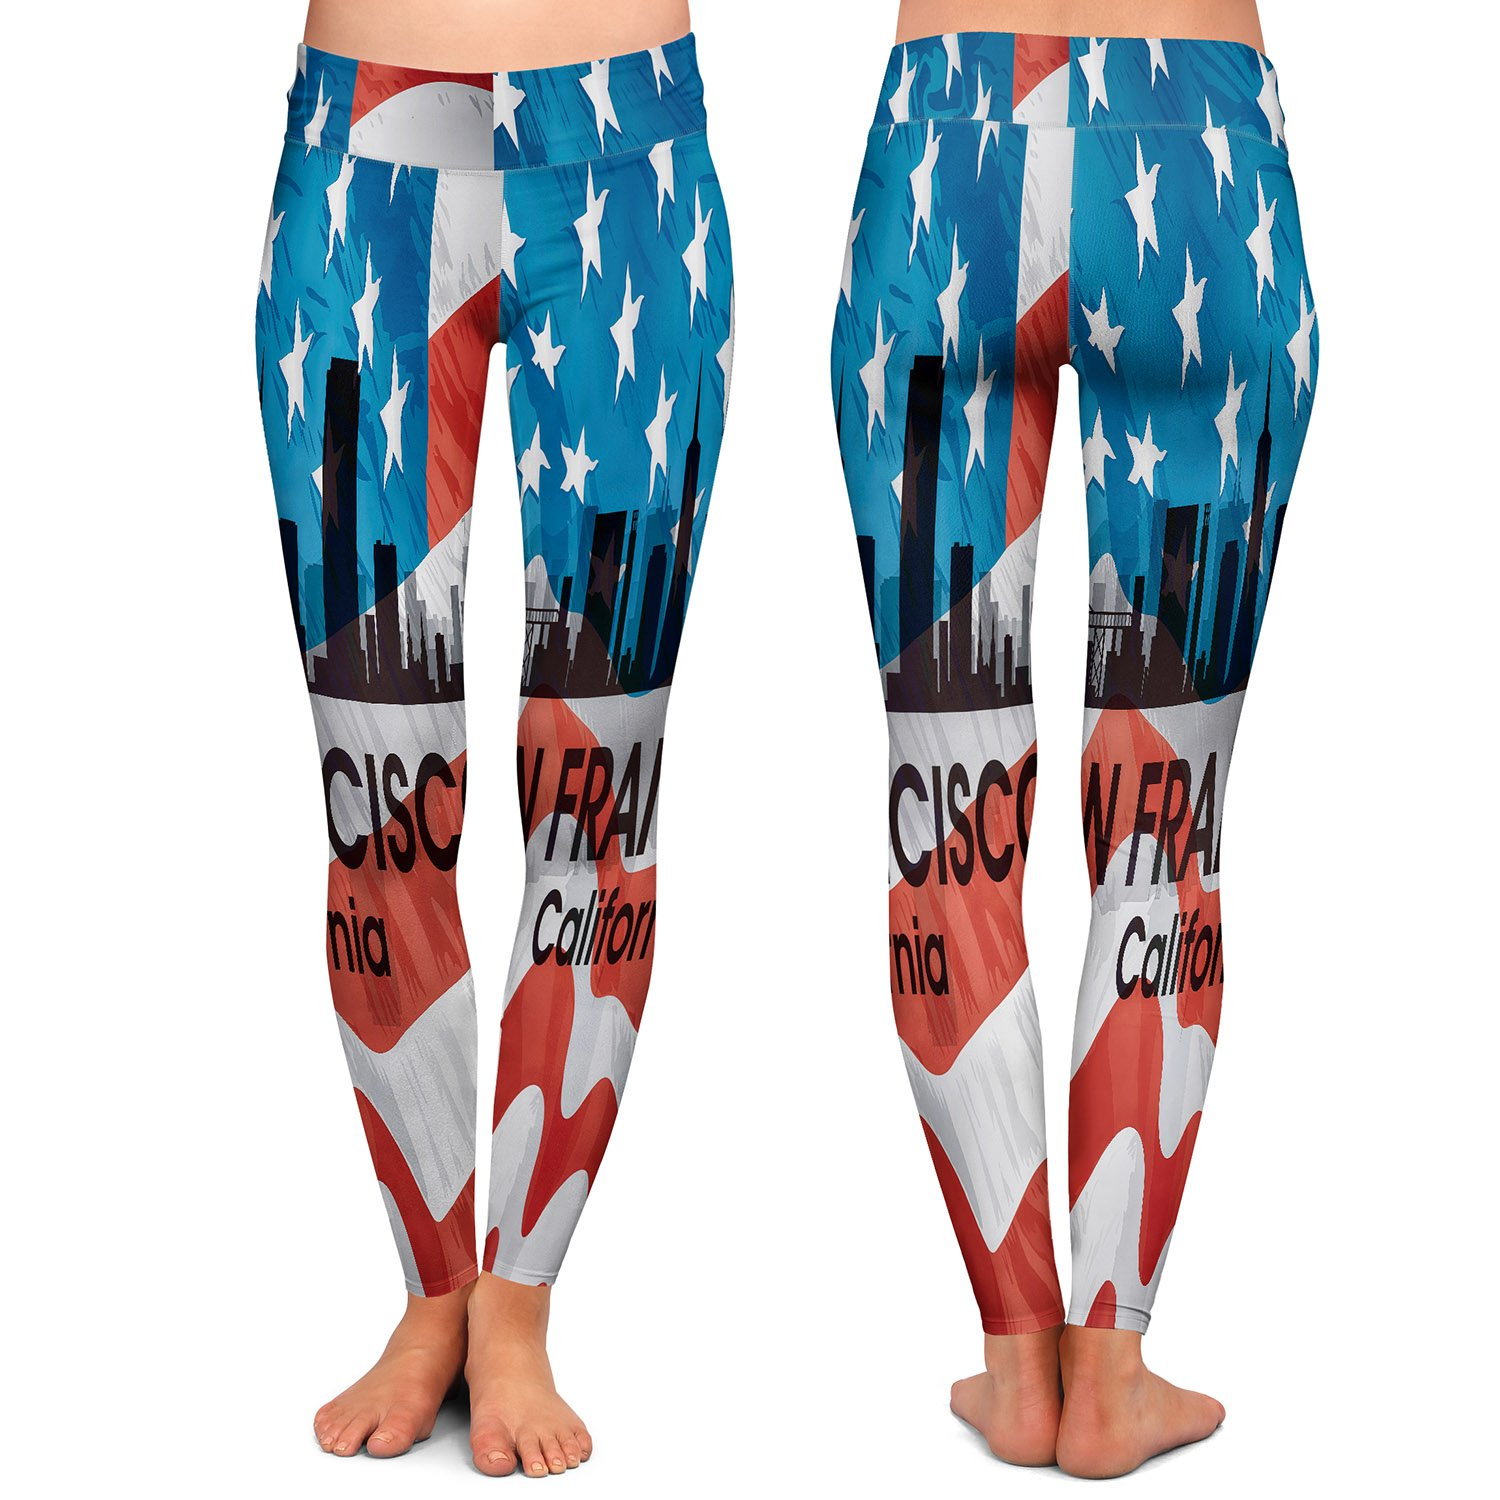 City VI San Francisco California Athletic Yoga Leggings from DiaNoche Designs by Artist Angelina Vick